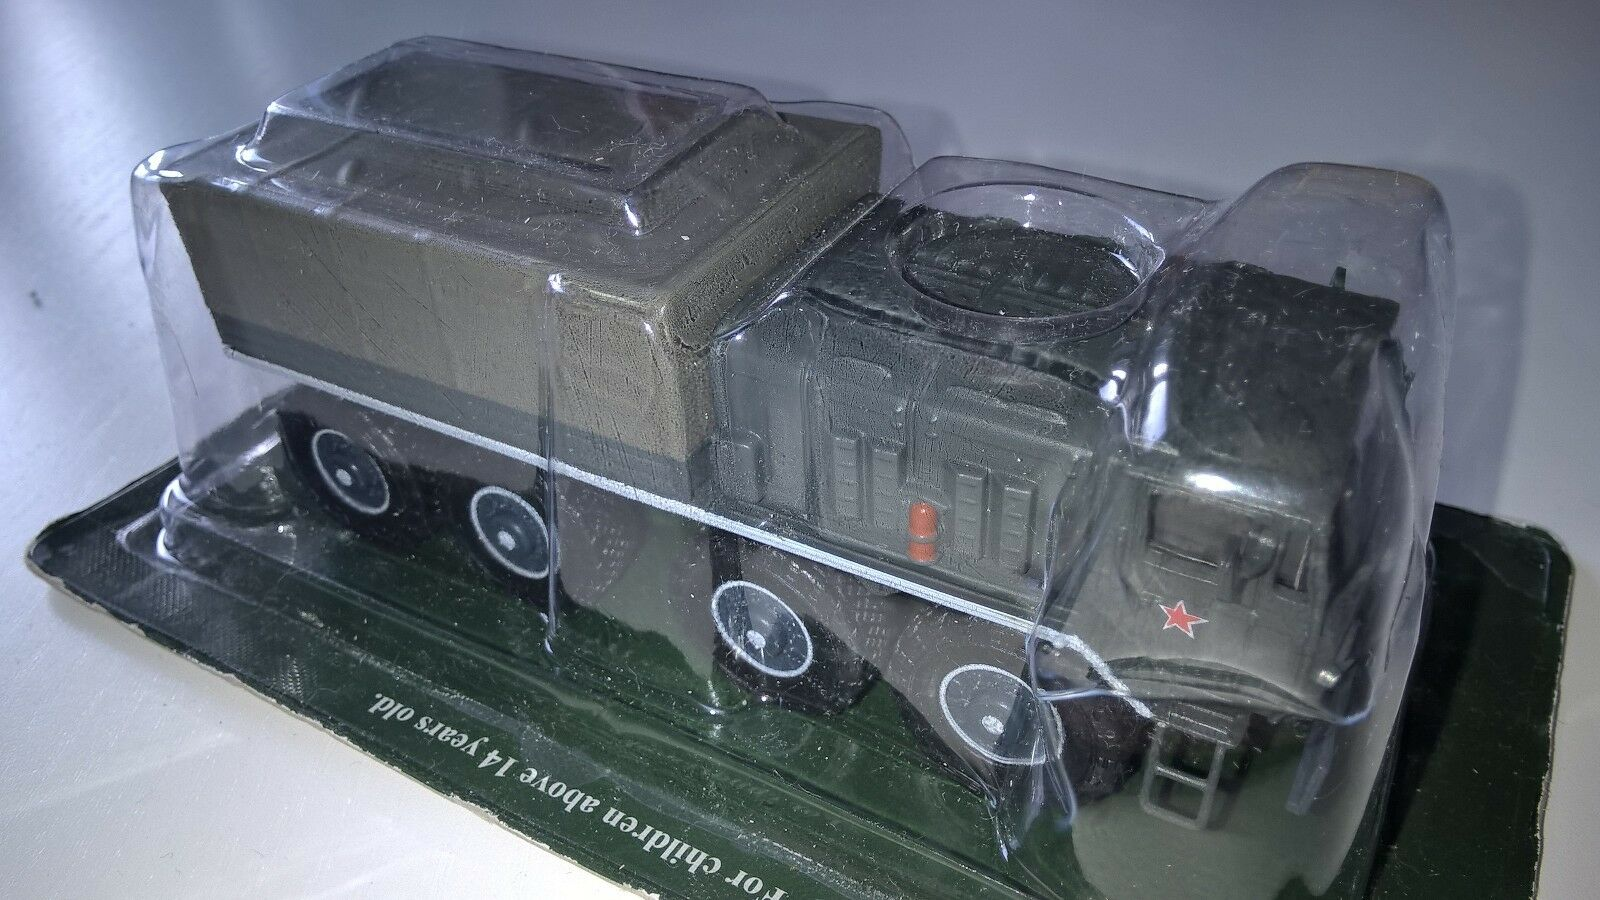 VEHICULE MILITAIRE 1/72 MA3-535A : Camion Russe 8X8  MA3-535A 1/72 c369c6